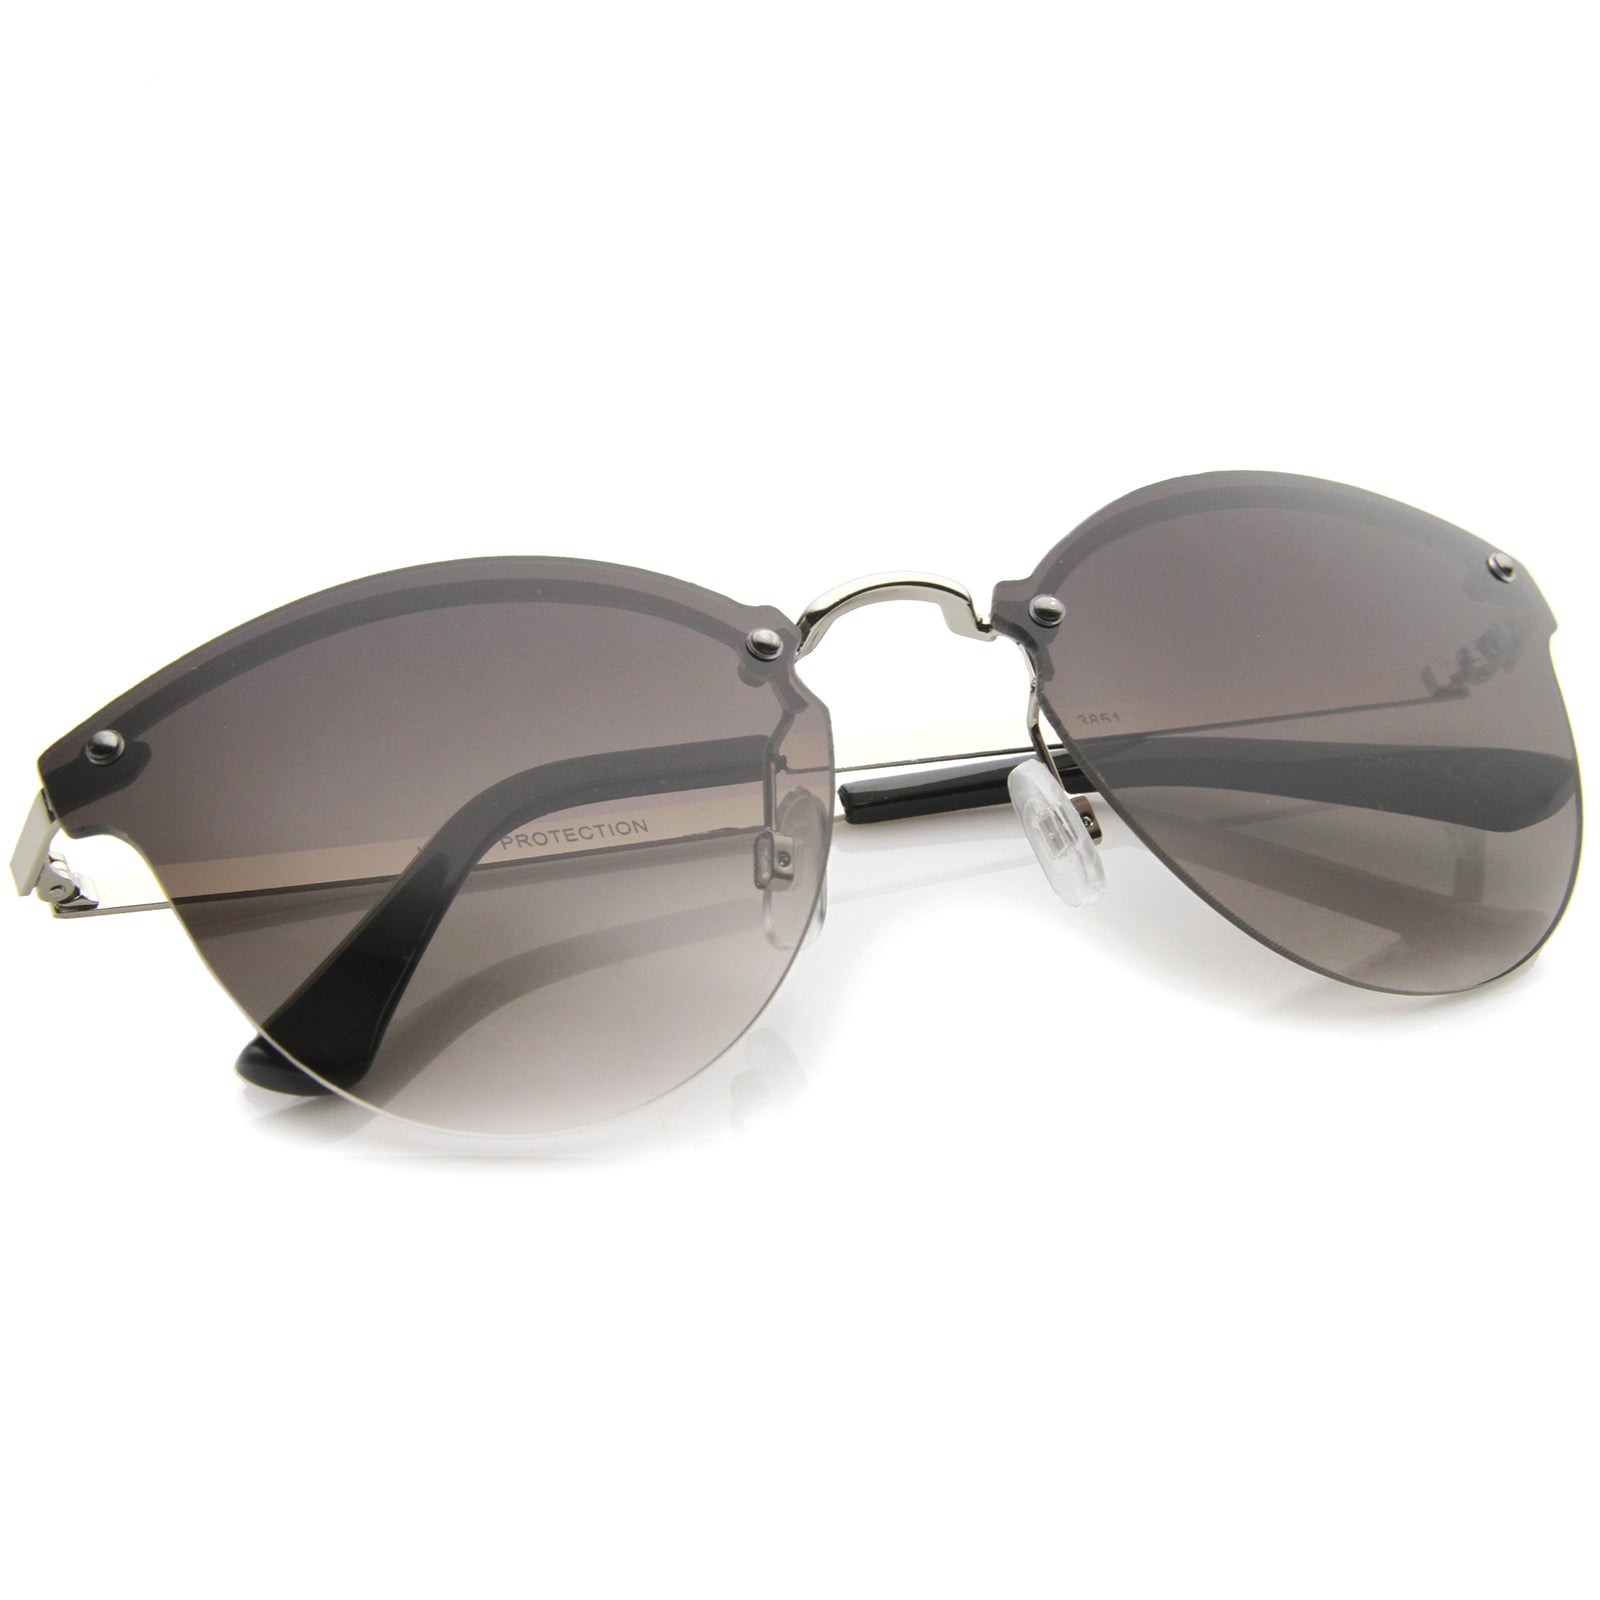 Womens Fashion Lightweight Rimless Metal Temple Cat Eye Sunglasses - sunglass.la - 8